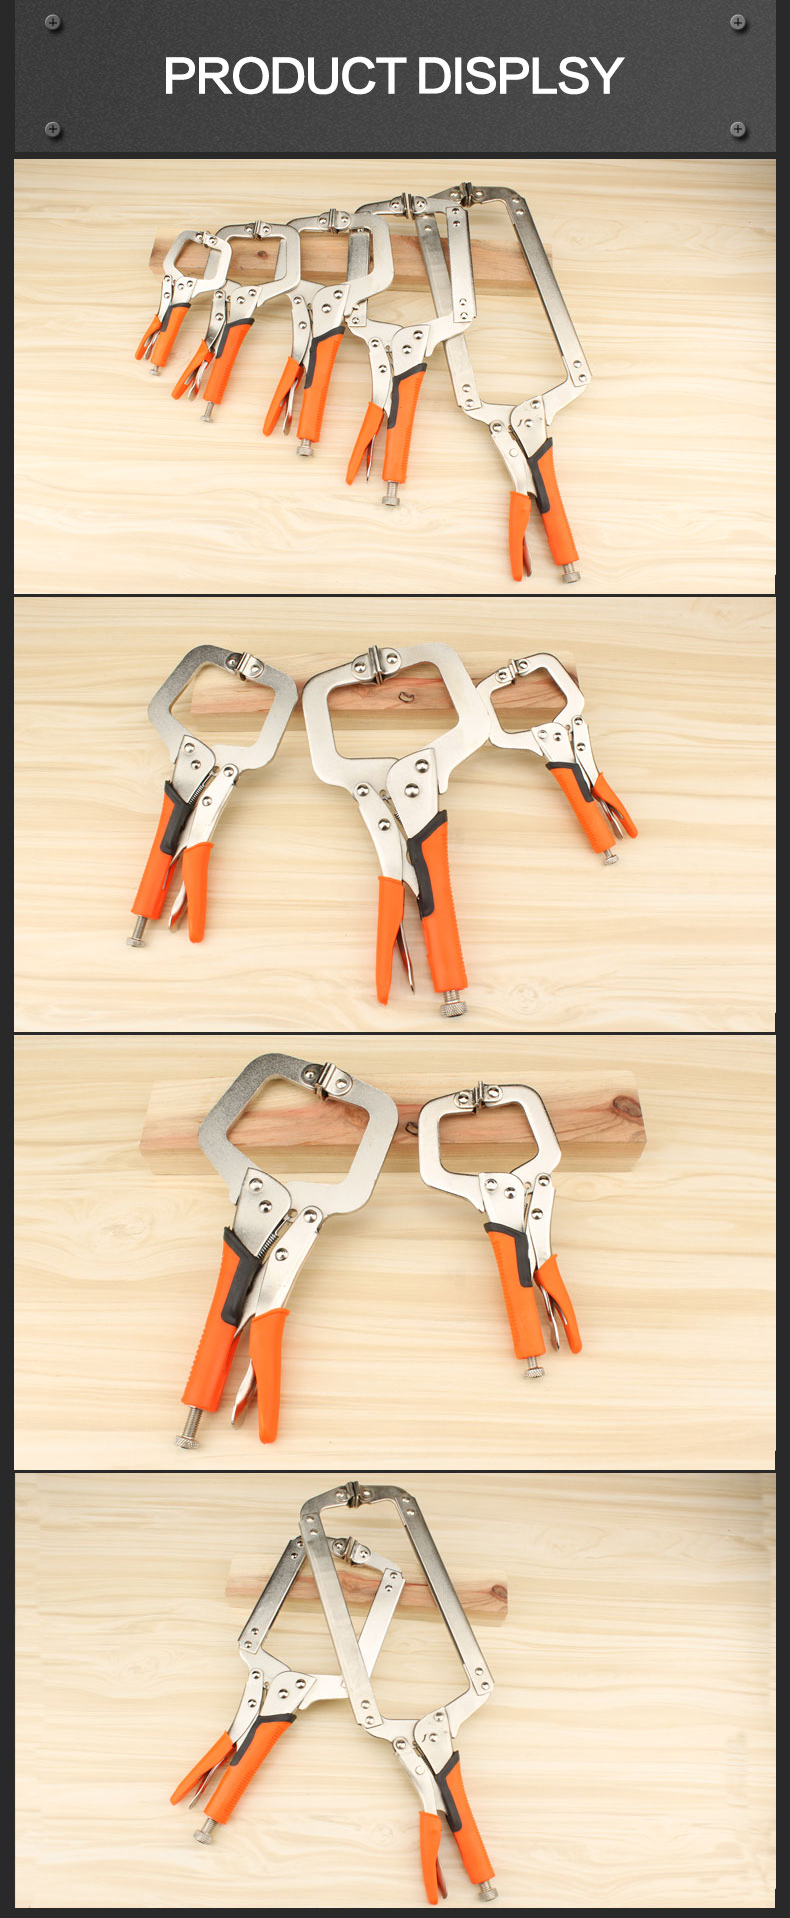 MYTEC MC-010102 C Type D-type Crimping Pliers Square Mouth Rubber Handle Woodworking Fast Pliers